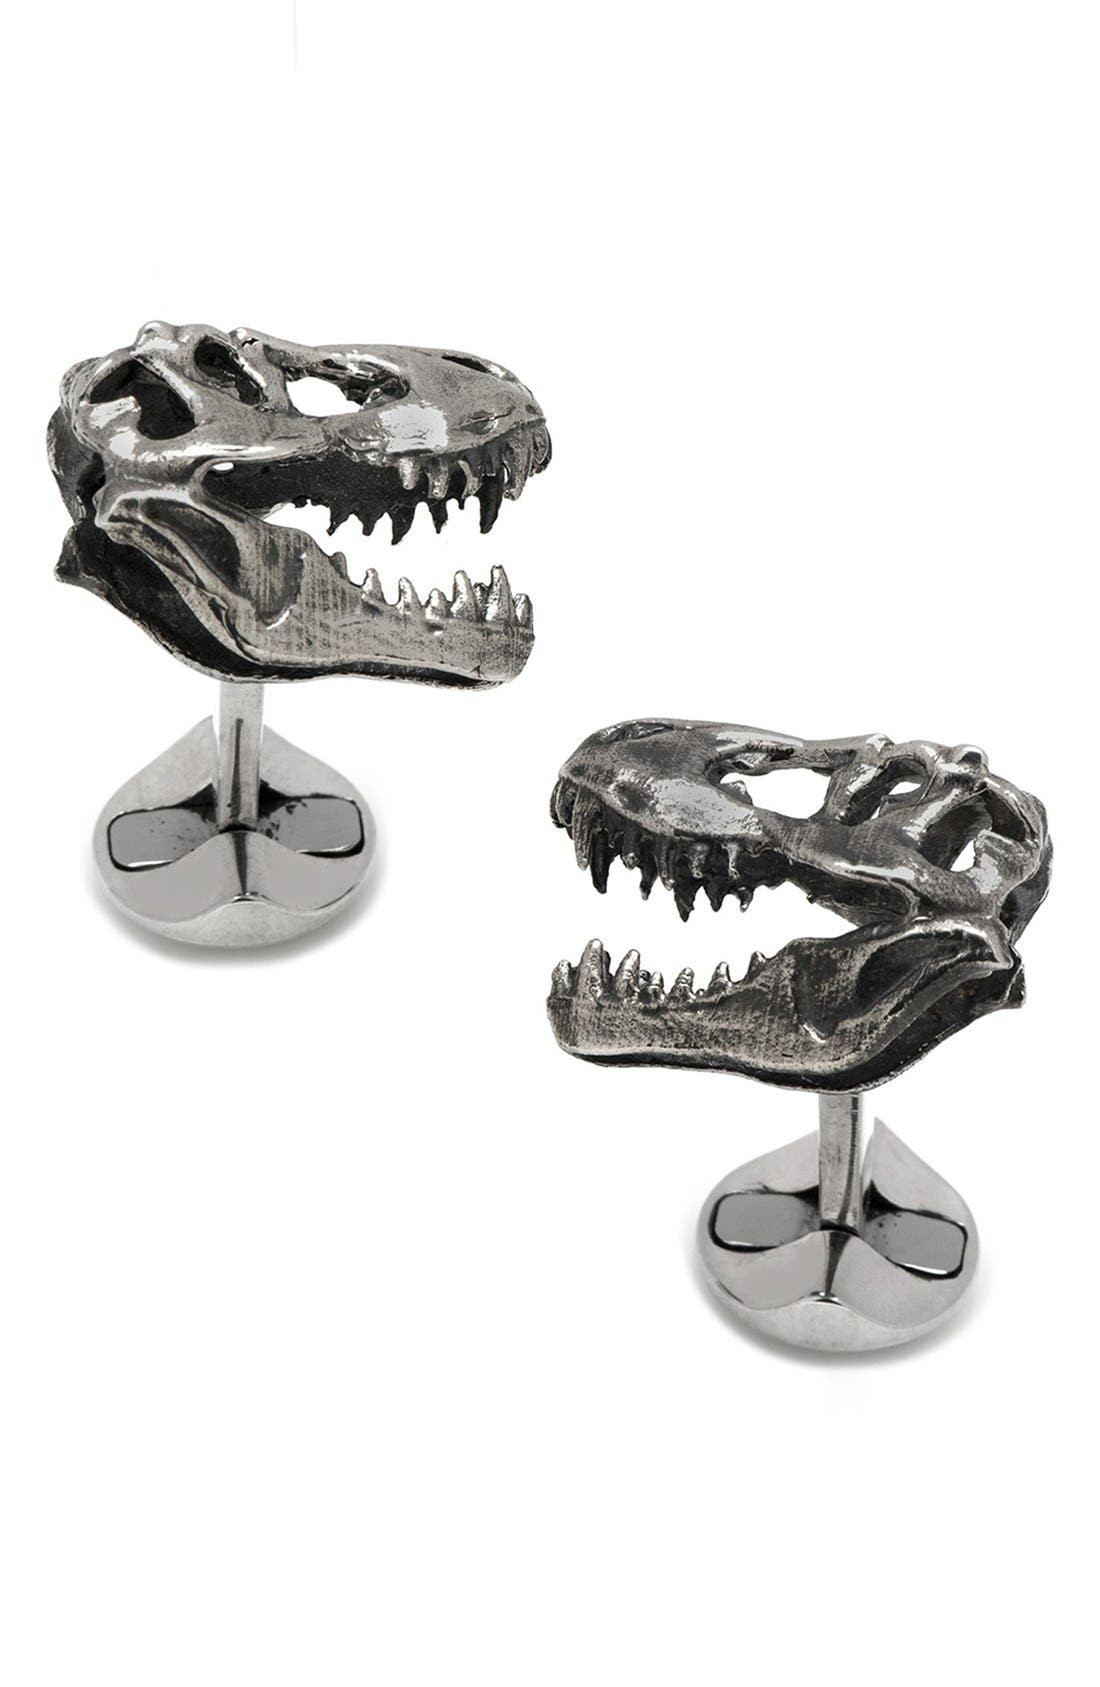 Ox and Bull Trading Co. T-Rex Skull Cuff Links